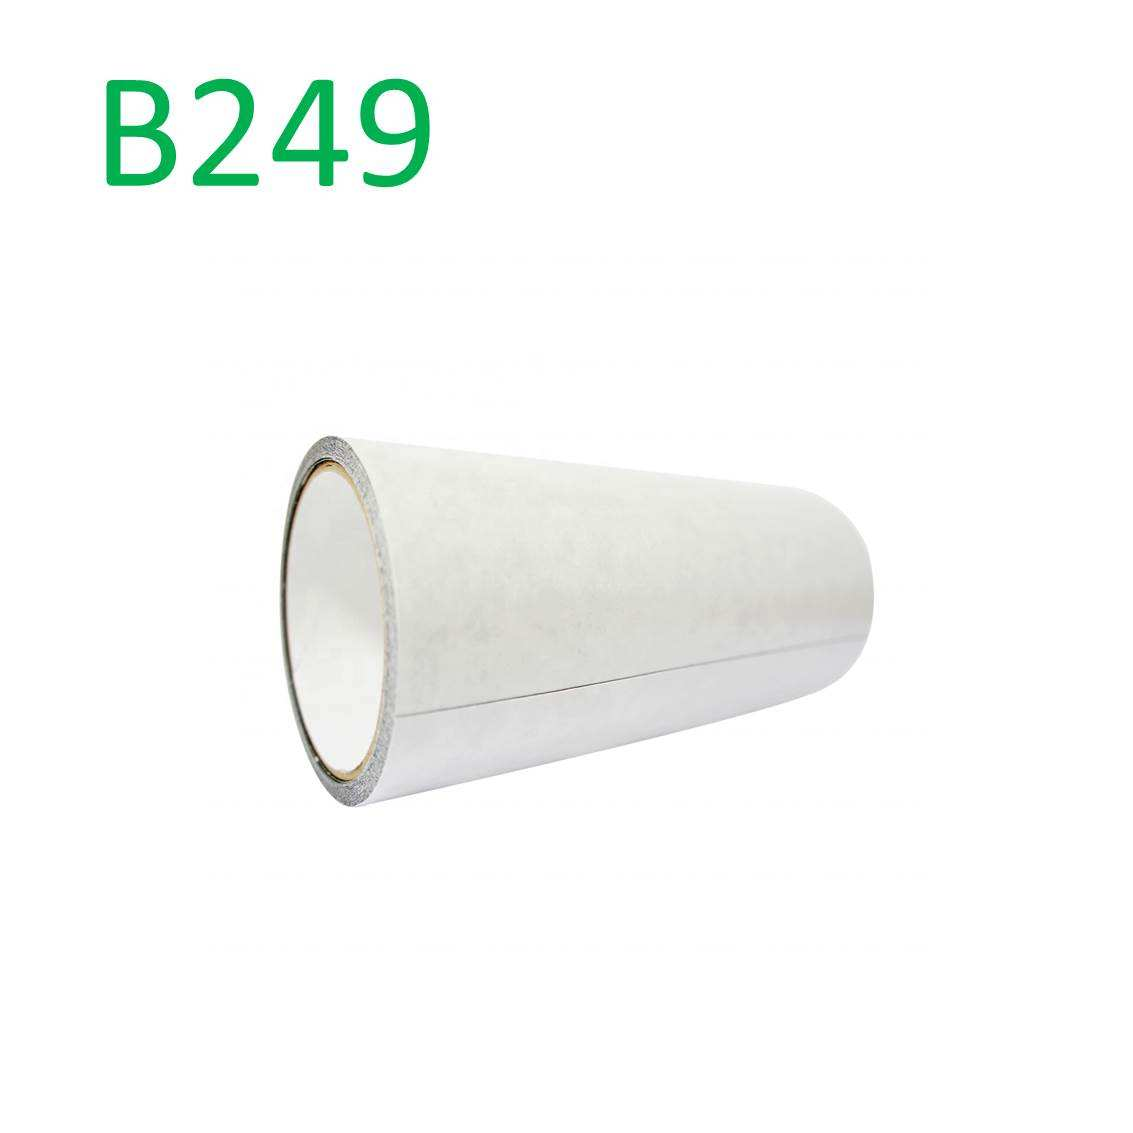 OEM Double-coated adhesive tape with Outstanding plasticizer resistance